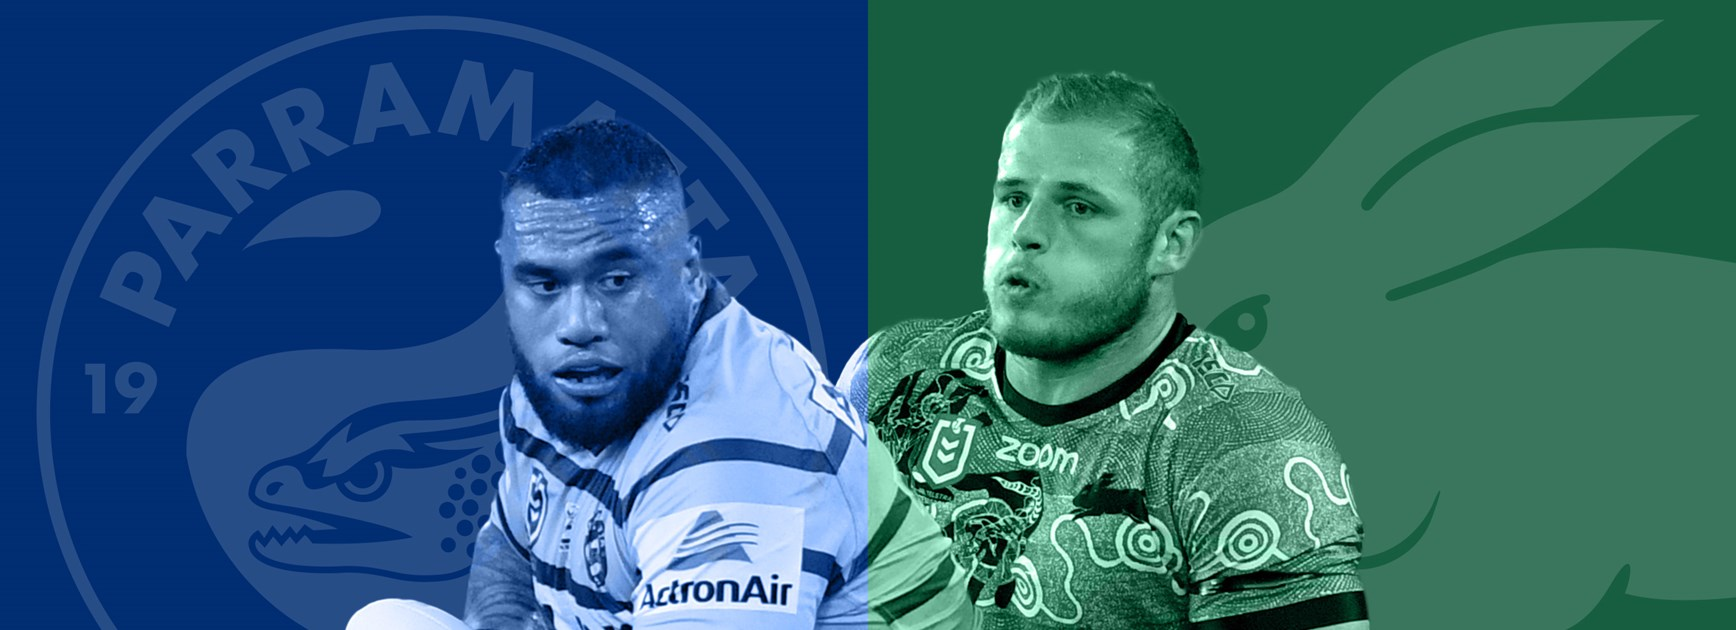 Match Preview: Eels v Rabbitohs, Round 12